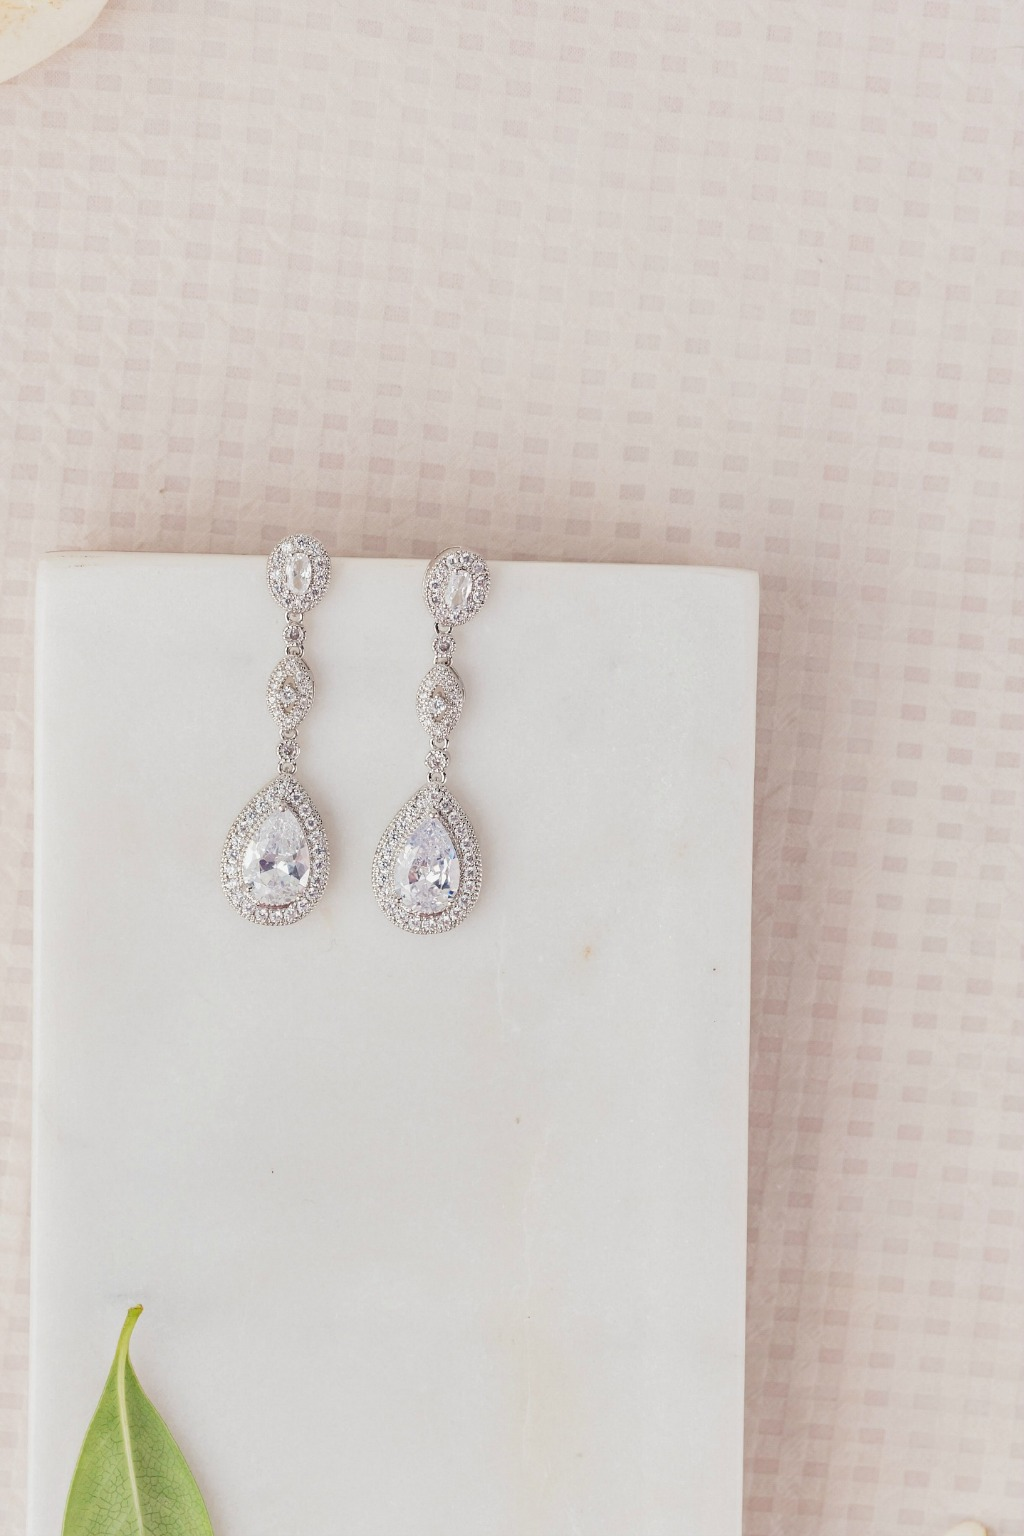 Add some glamour to your wedding look with the classic Maxima drop bridal earrings. Made with cubic zirconia crystals, these wedding